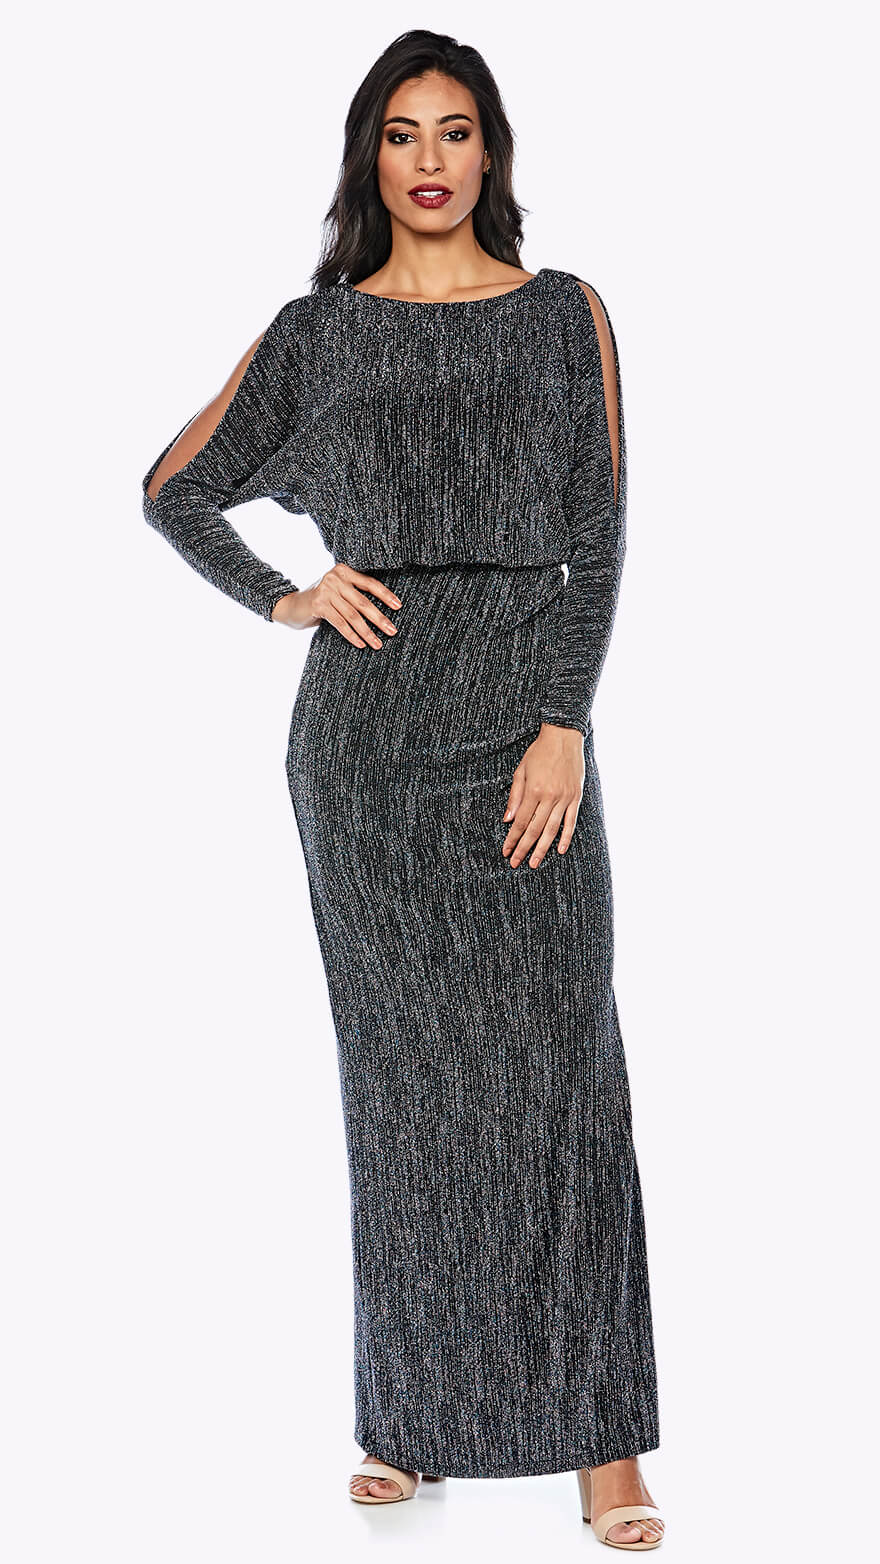 Z0189 Shimmer blouson style gown with open full-length sleeve